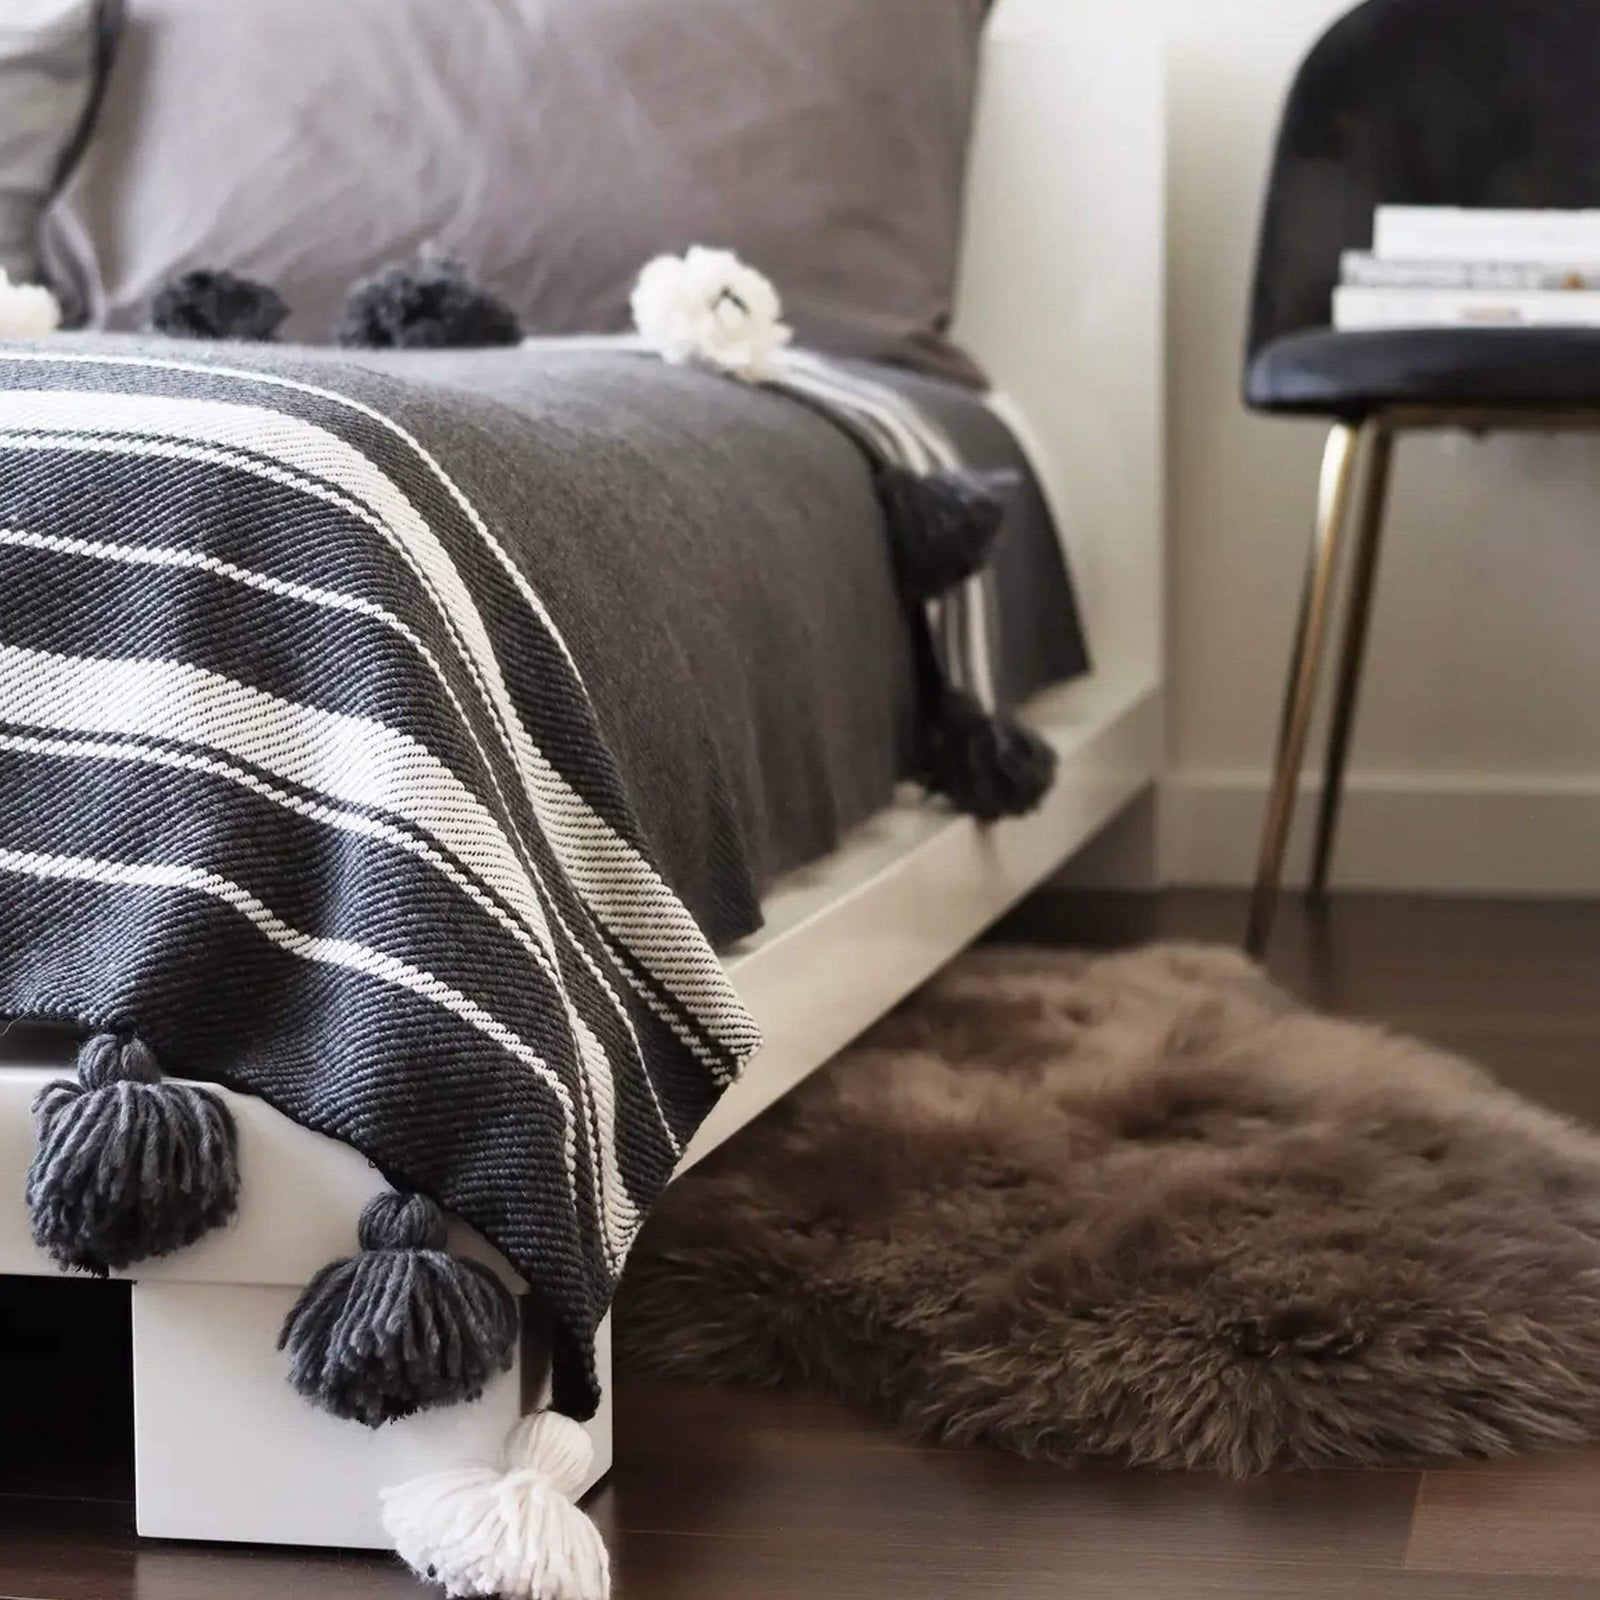 SOCCO WHOLESALE Bedding Pom Pom Blanket Hanane